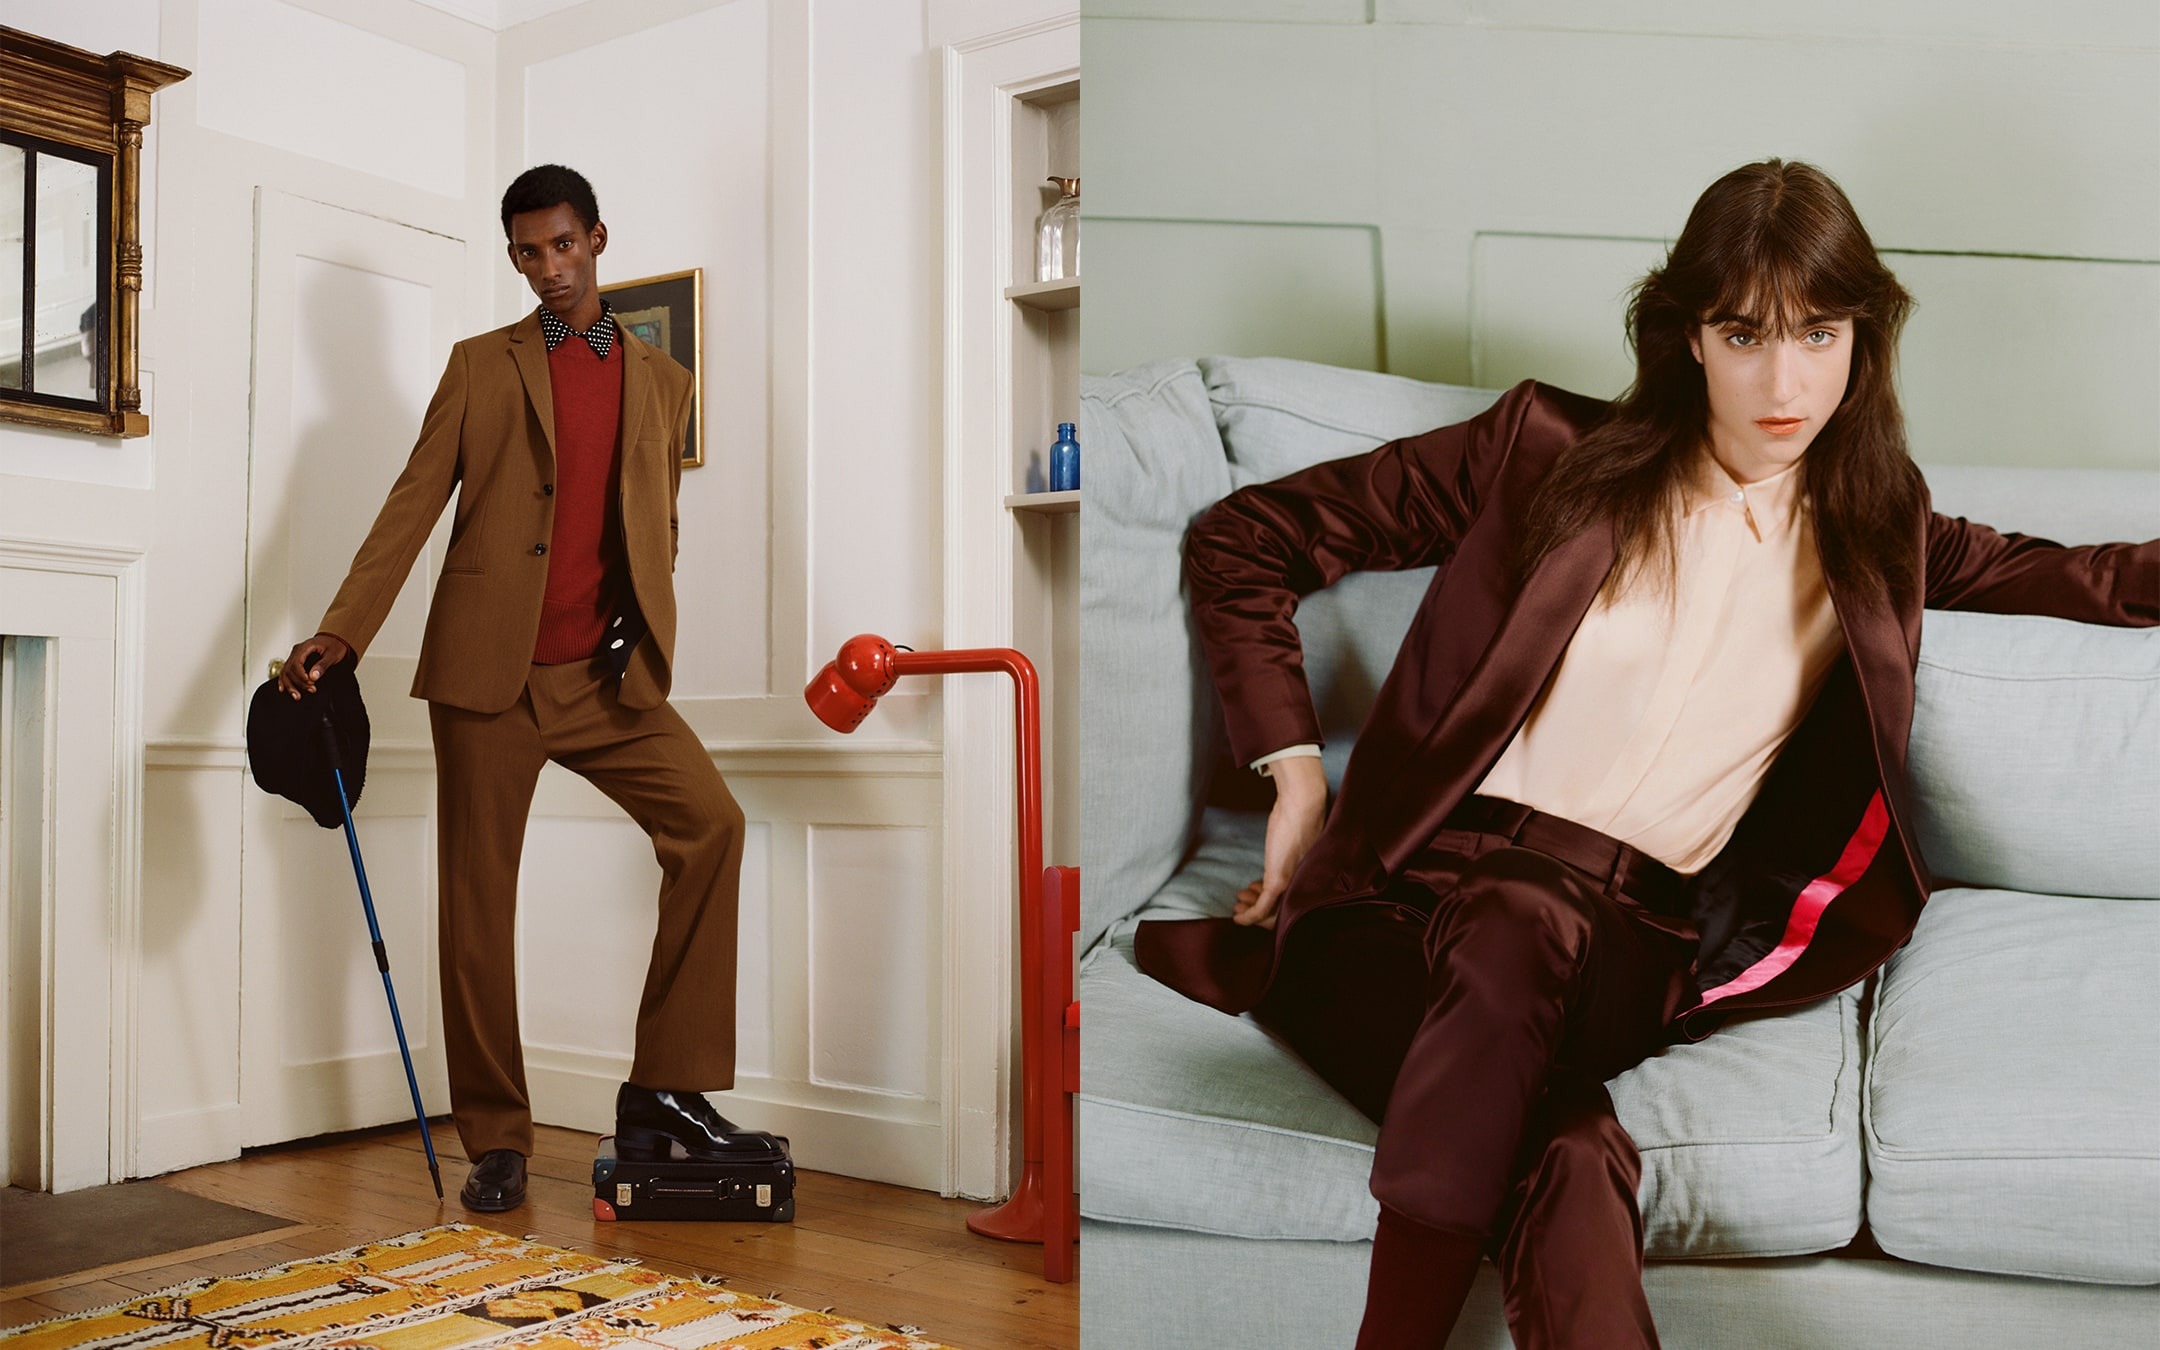 HOLIDAY20_PAUL_SMITH_GLOBAL_WOMENS_MODEL_BROWN_SUIT_RGB_HR_top_2160_1350.jpg